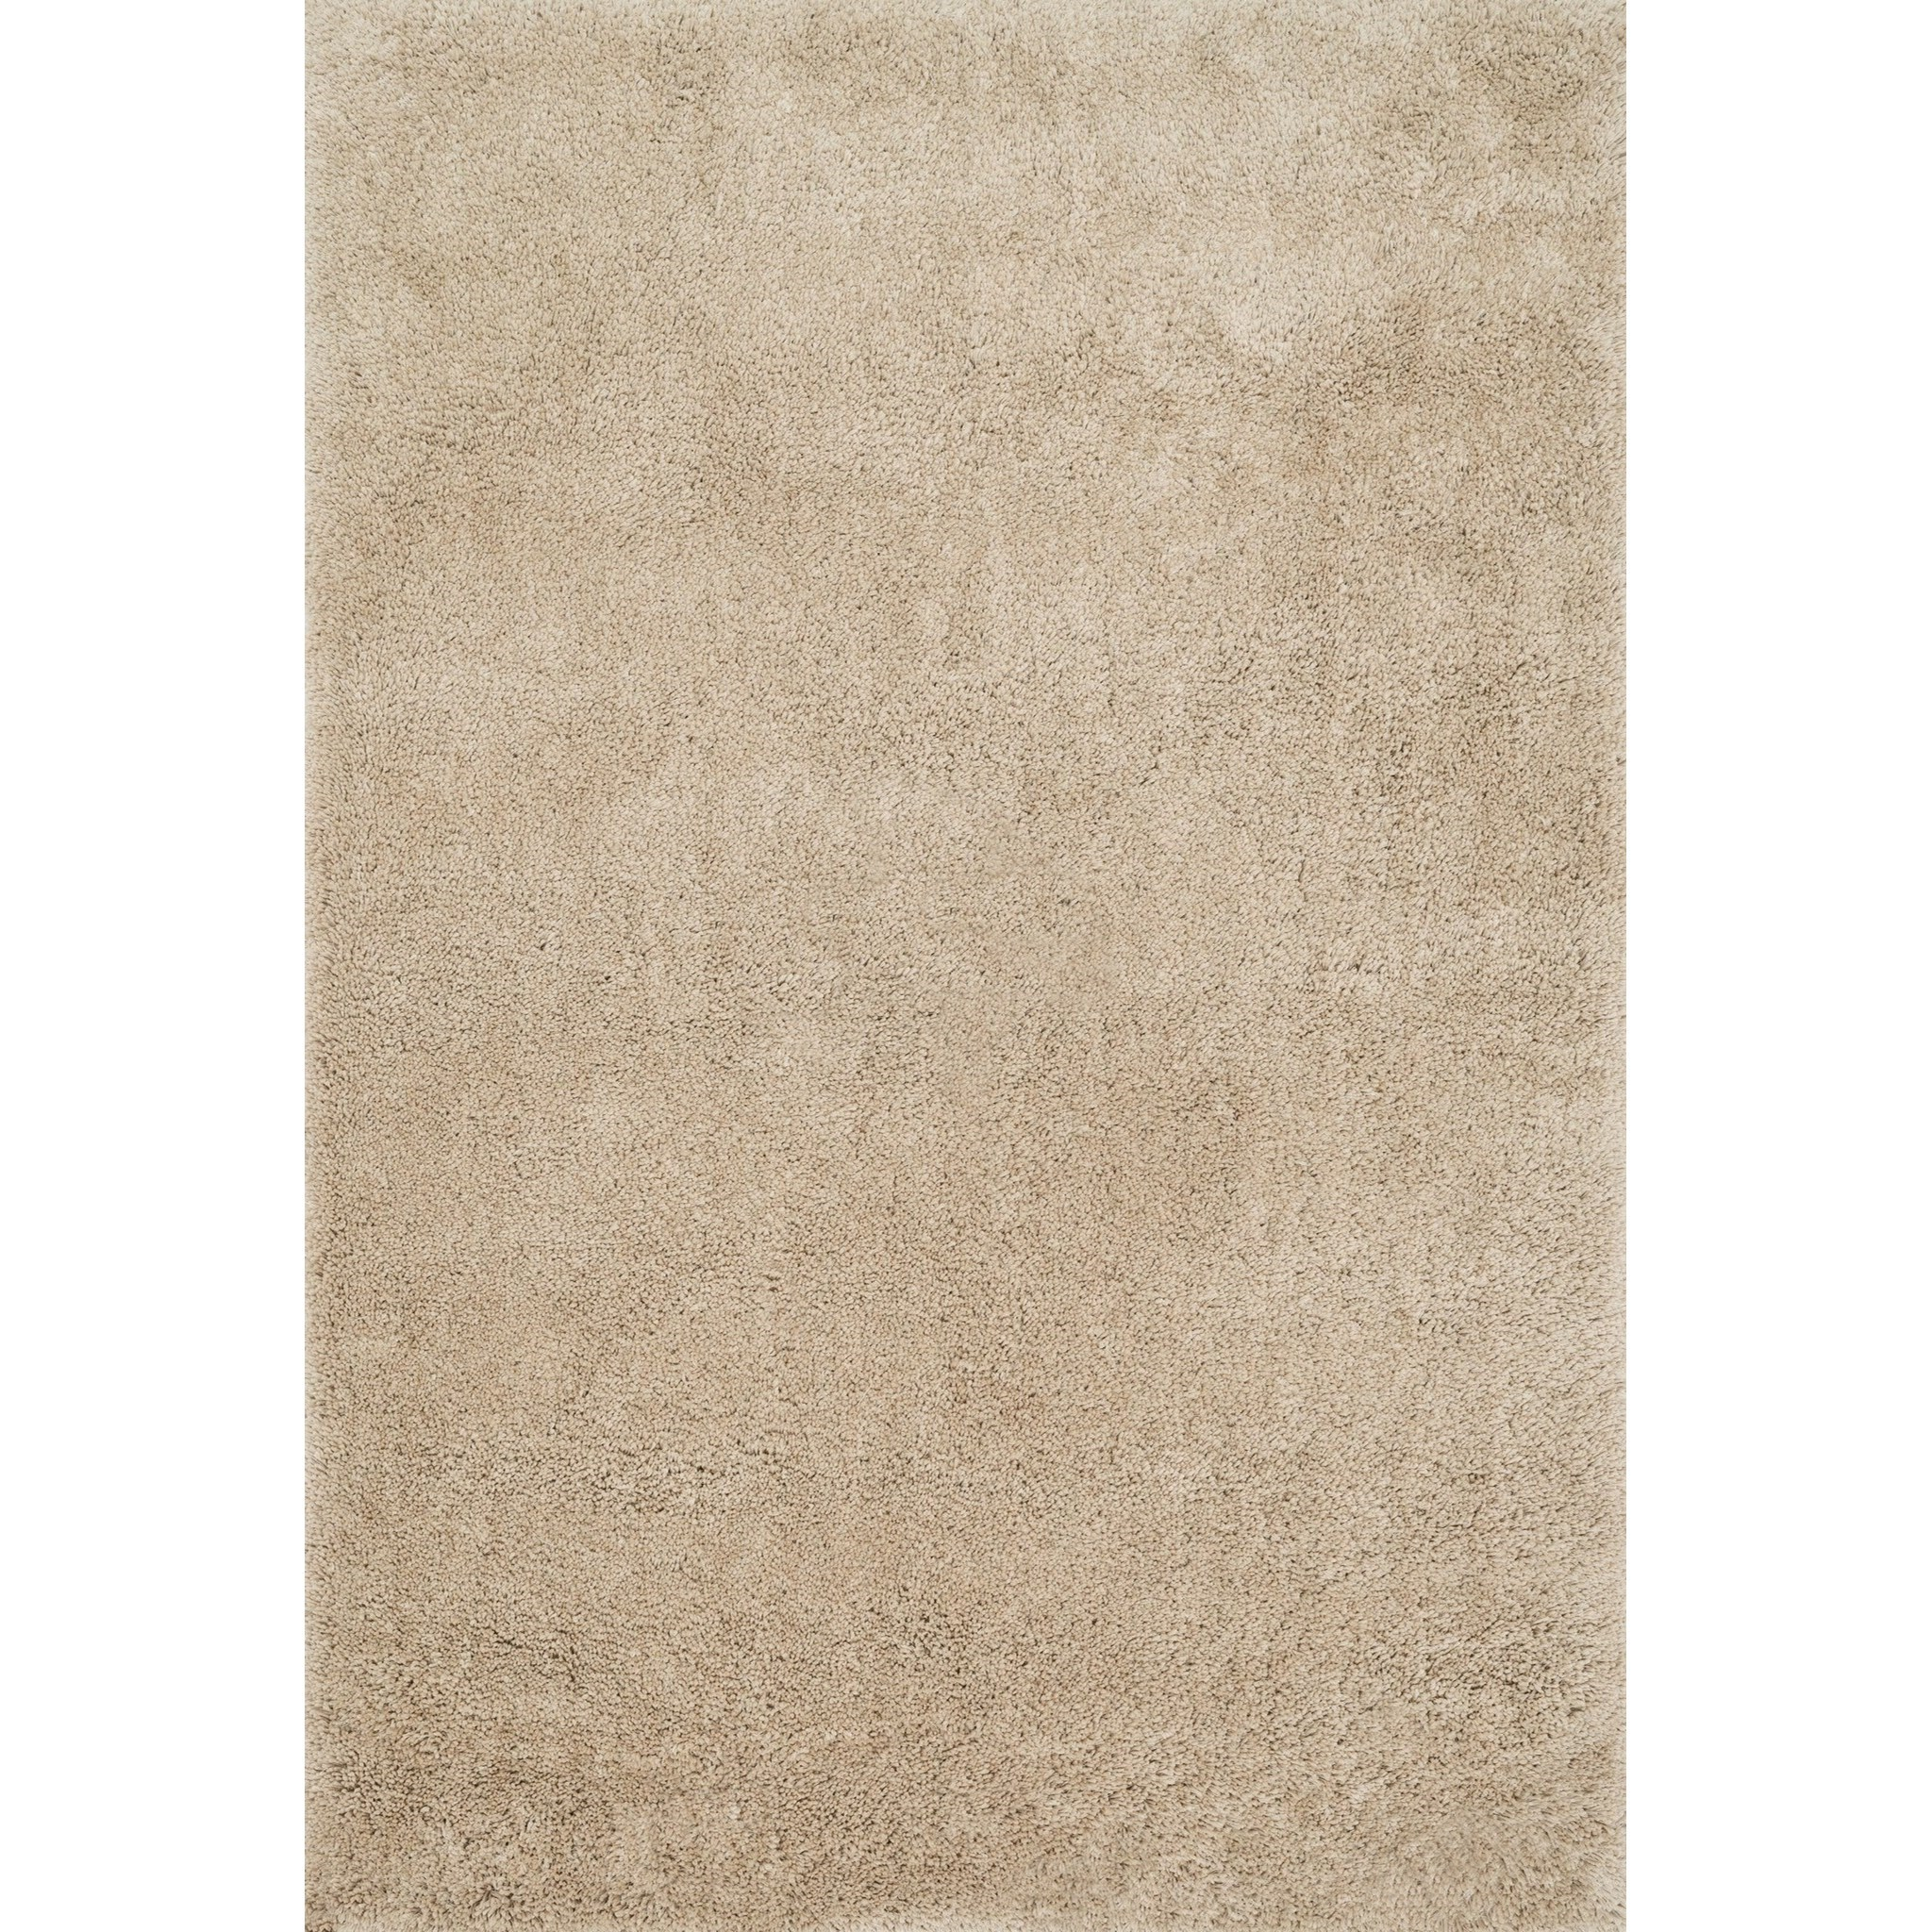 """Cozy Shag 7'-10"""" x 11'-0"""" Area Rug by Loloi Rugs at Virginia Furniture Market"""